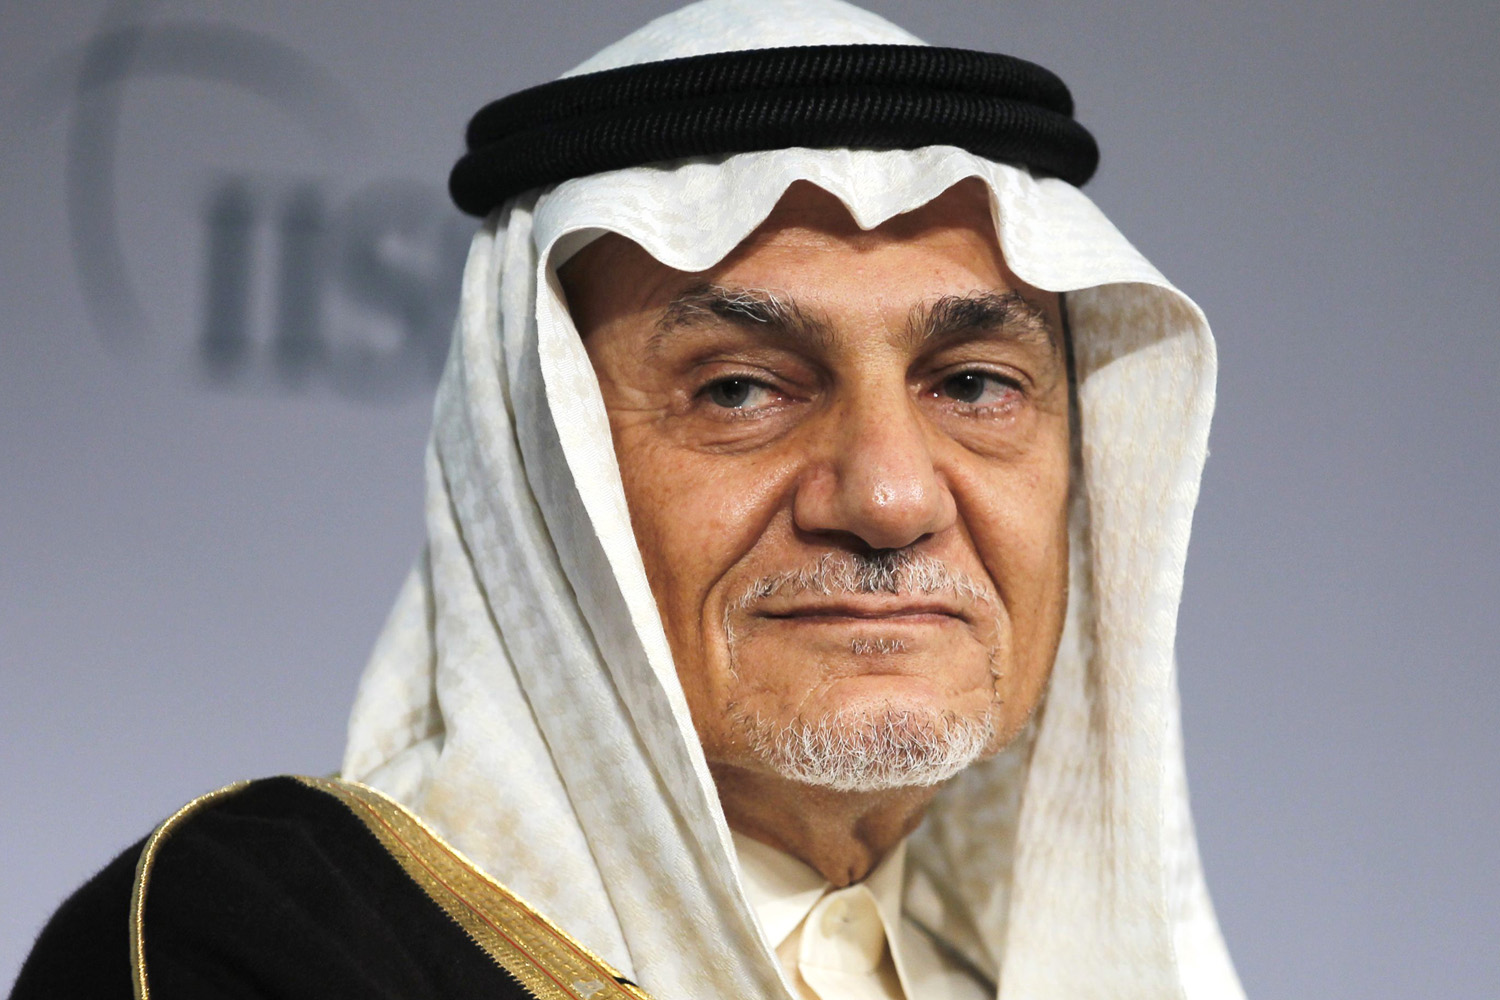 Former Head of Saudi intelligence and current Saudi King Faisal Center for Research and Islamic Studies Chairman Prince Turki Al Faisal Al Saud attends a close session meeting at the IISS Regional Security Summit - The Manama Dialogue in Manama, December 8, 2013. REUTERS/Hamad I Mohammed (BAHRAIN - Tags: POLITICS MILITARY HEADSHOT ROYALS)